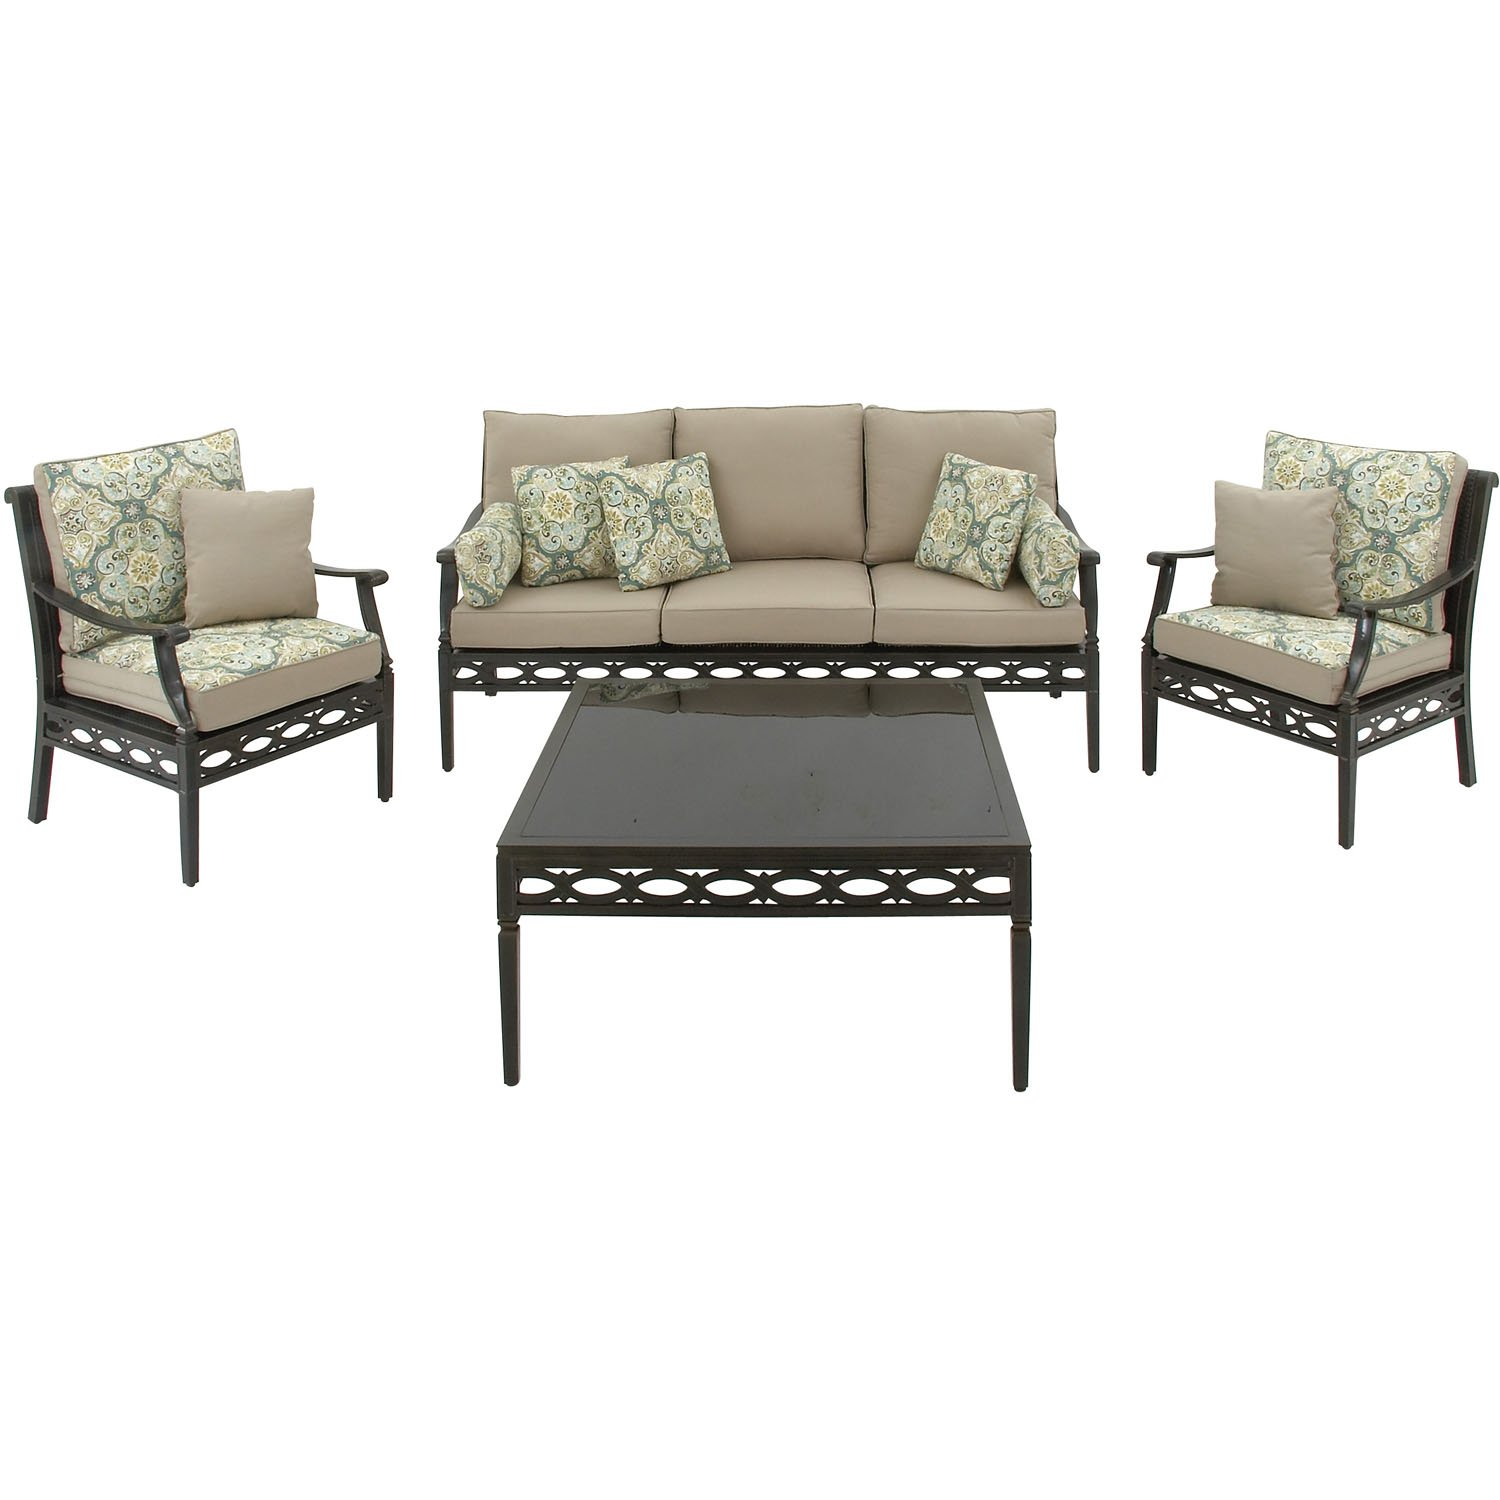 Amazon Hanover CORTEZ4PC 4 Piece Outdoor Cortez Patio Set